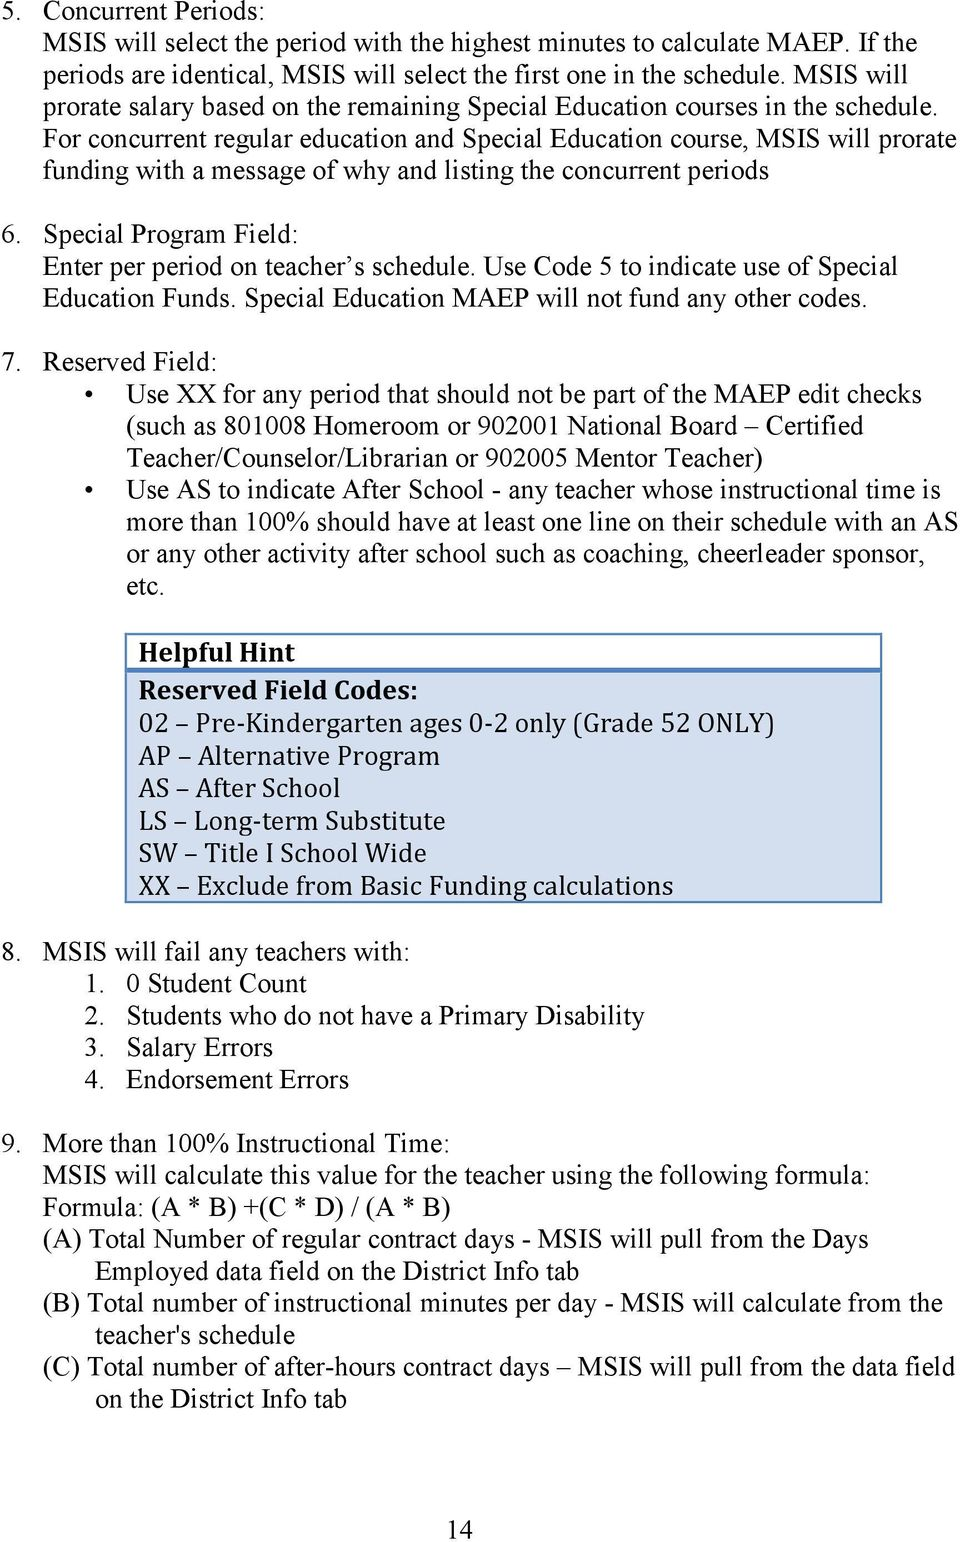 Msis Special Education Manual Pdf